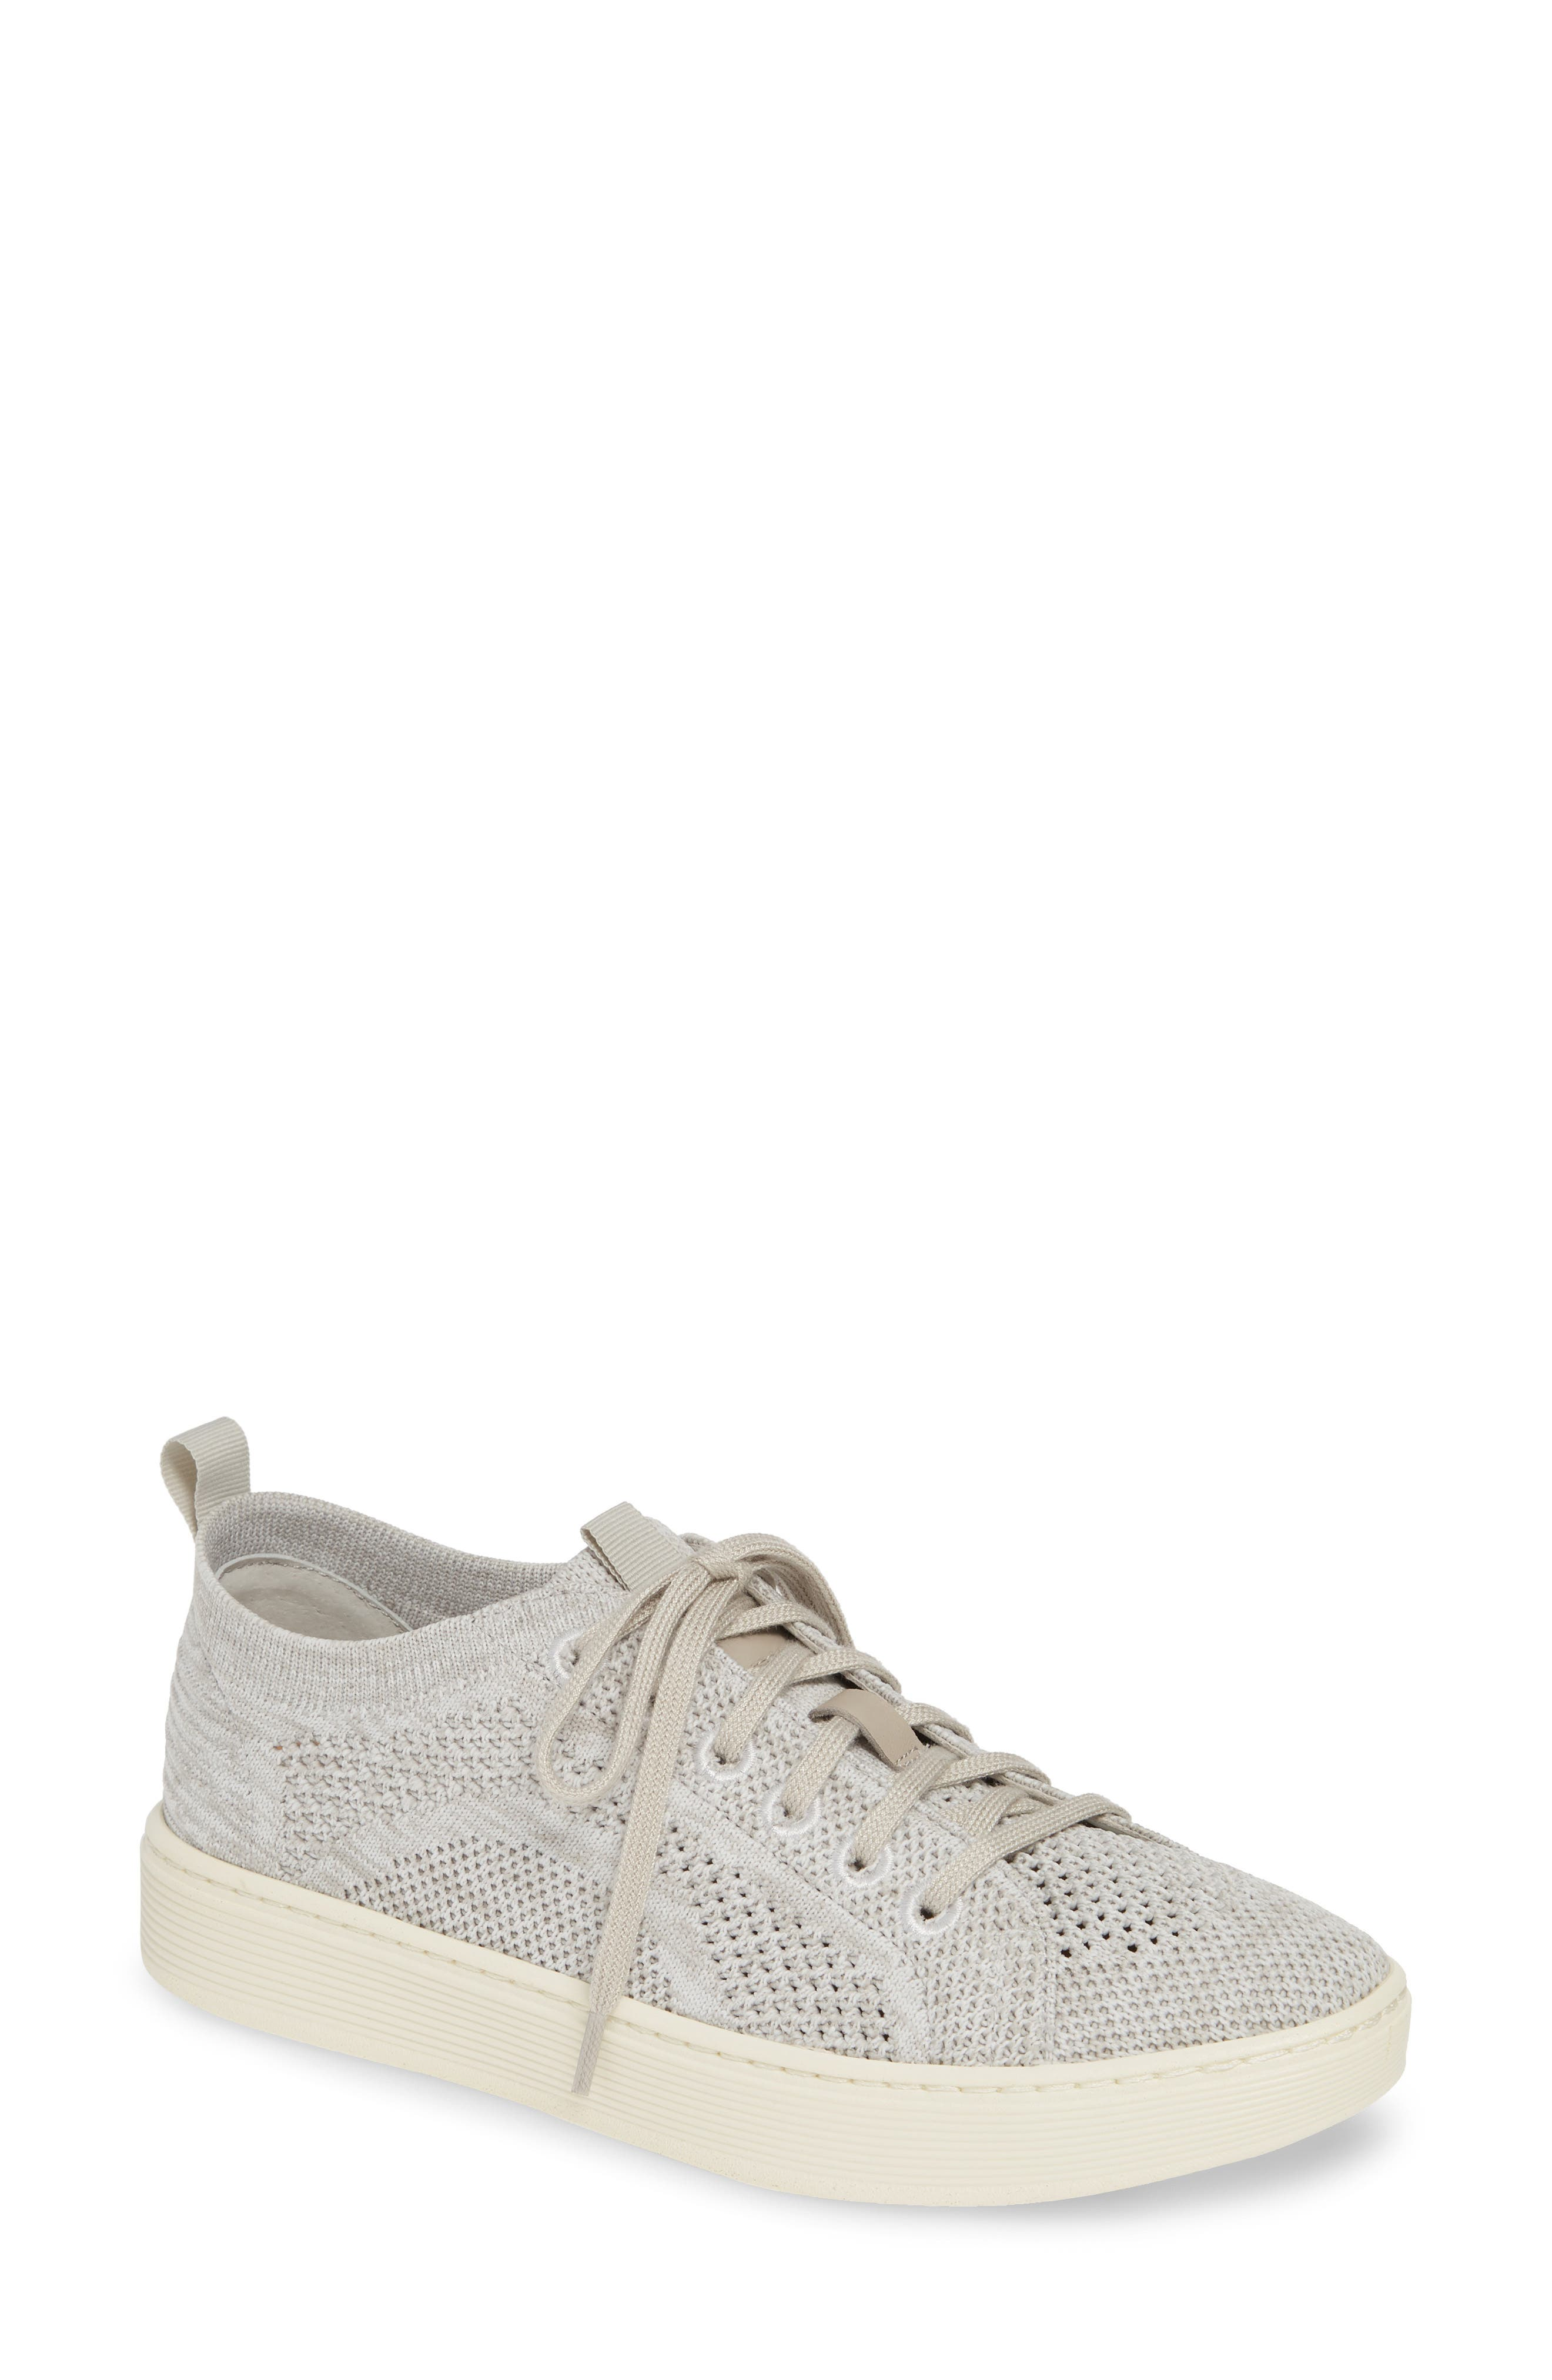 SÖFFT, Somers Knit Sneaker, Main thumbnail 1, color, MIST GREY/ WHITE